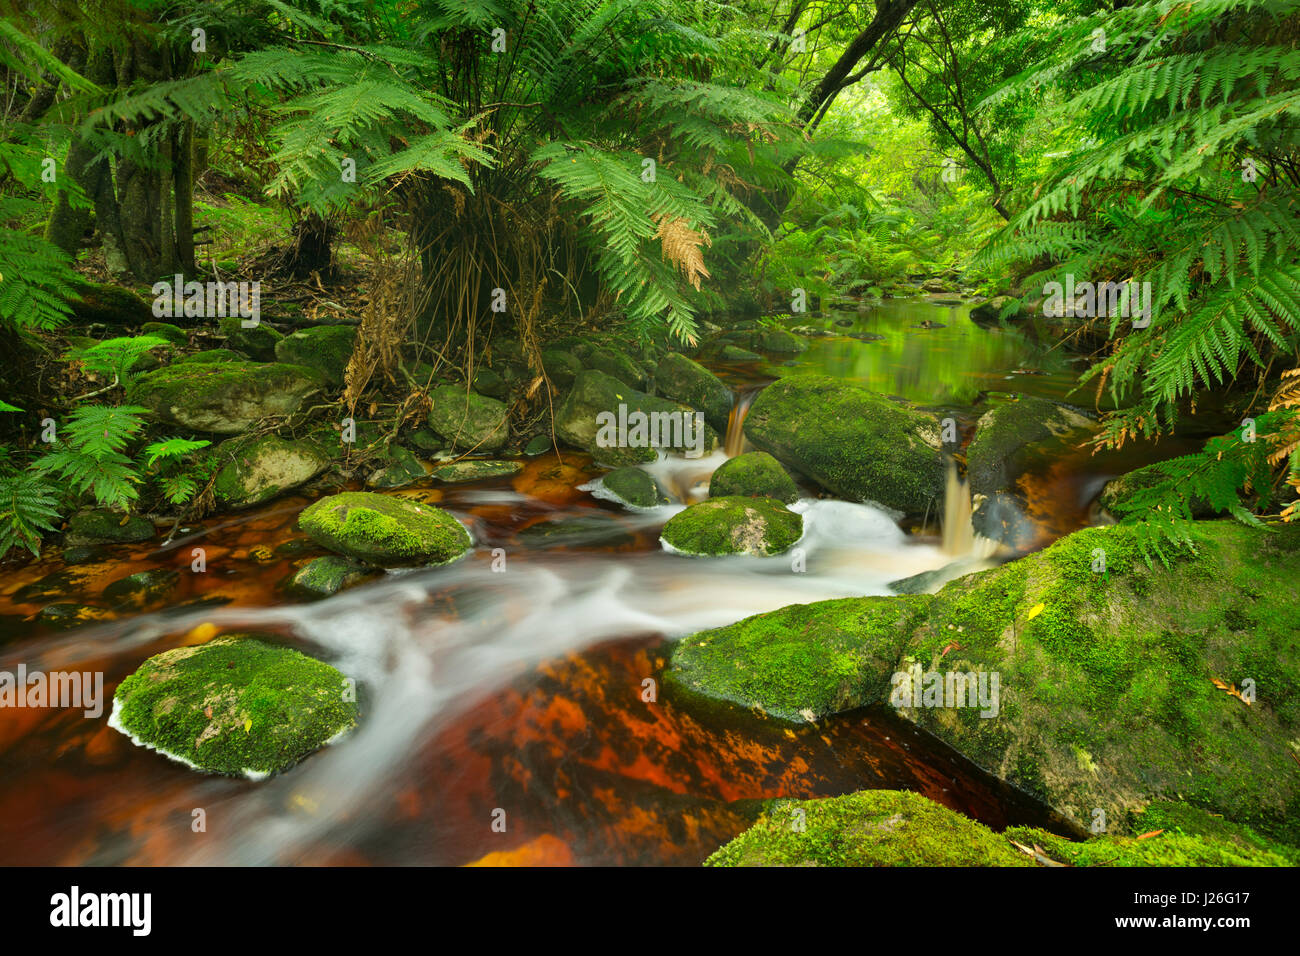 Red river through lush temperate rainforest in the Garden Route National Park in South Africa. - Stock Image